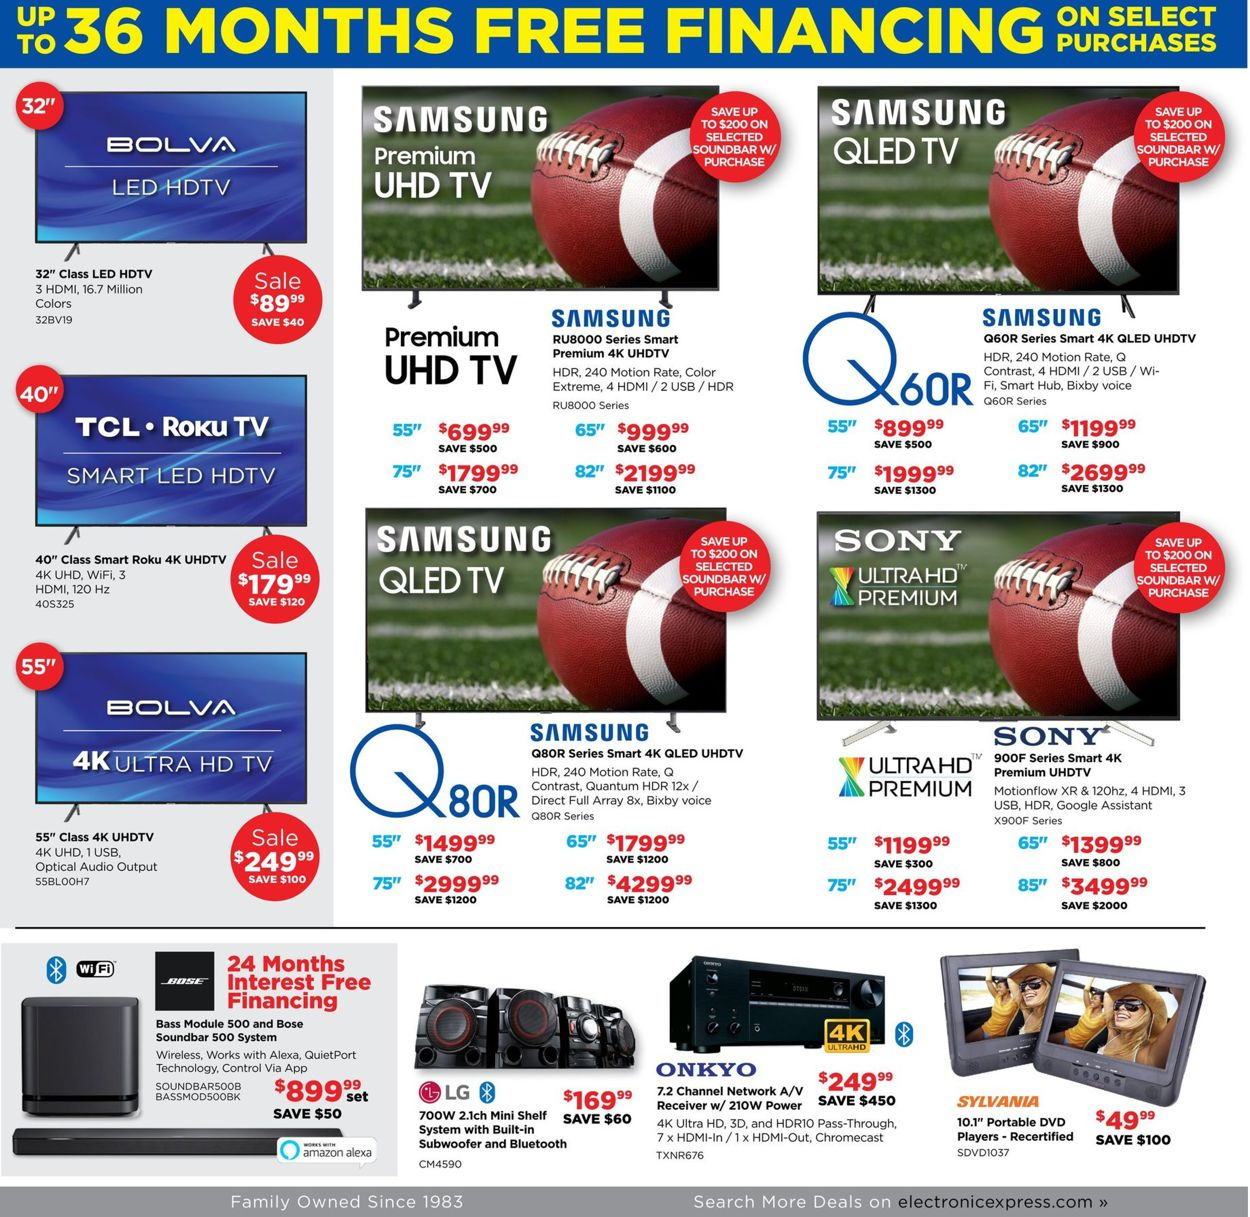 Electronic Express Current weekly ad 08\/25 - 08\/31\/2019 [2] - frequent-ads.com